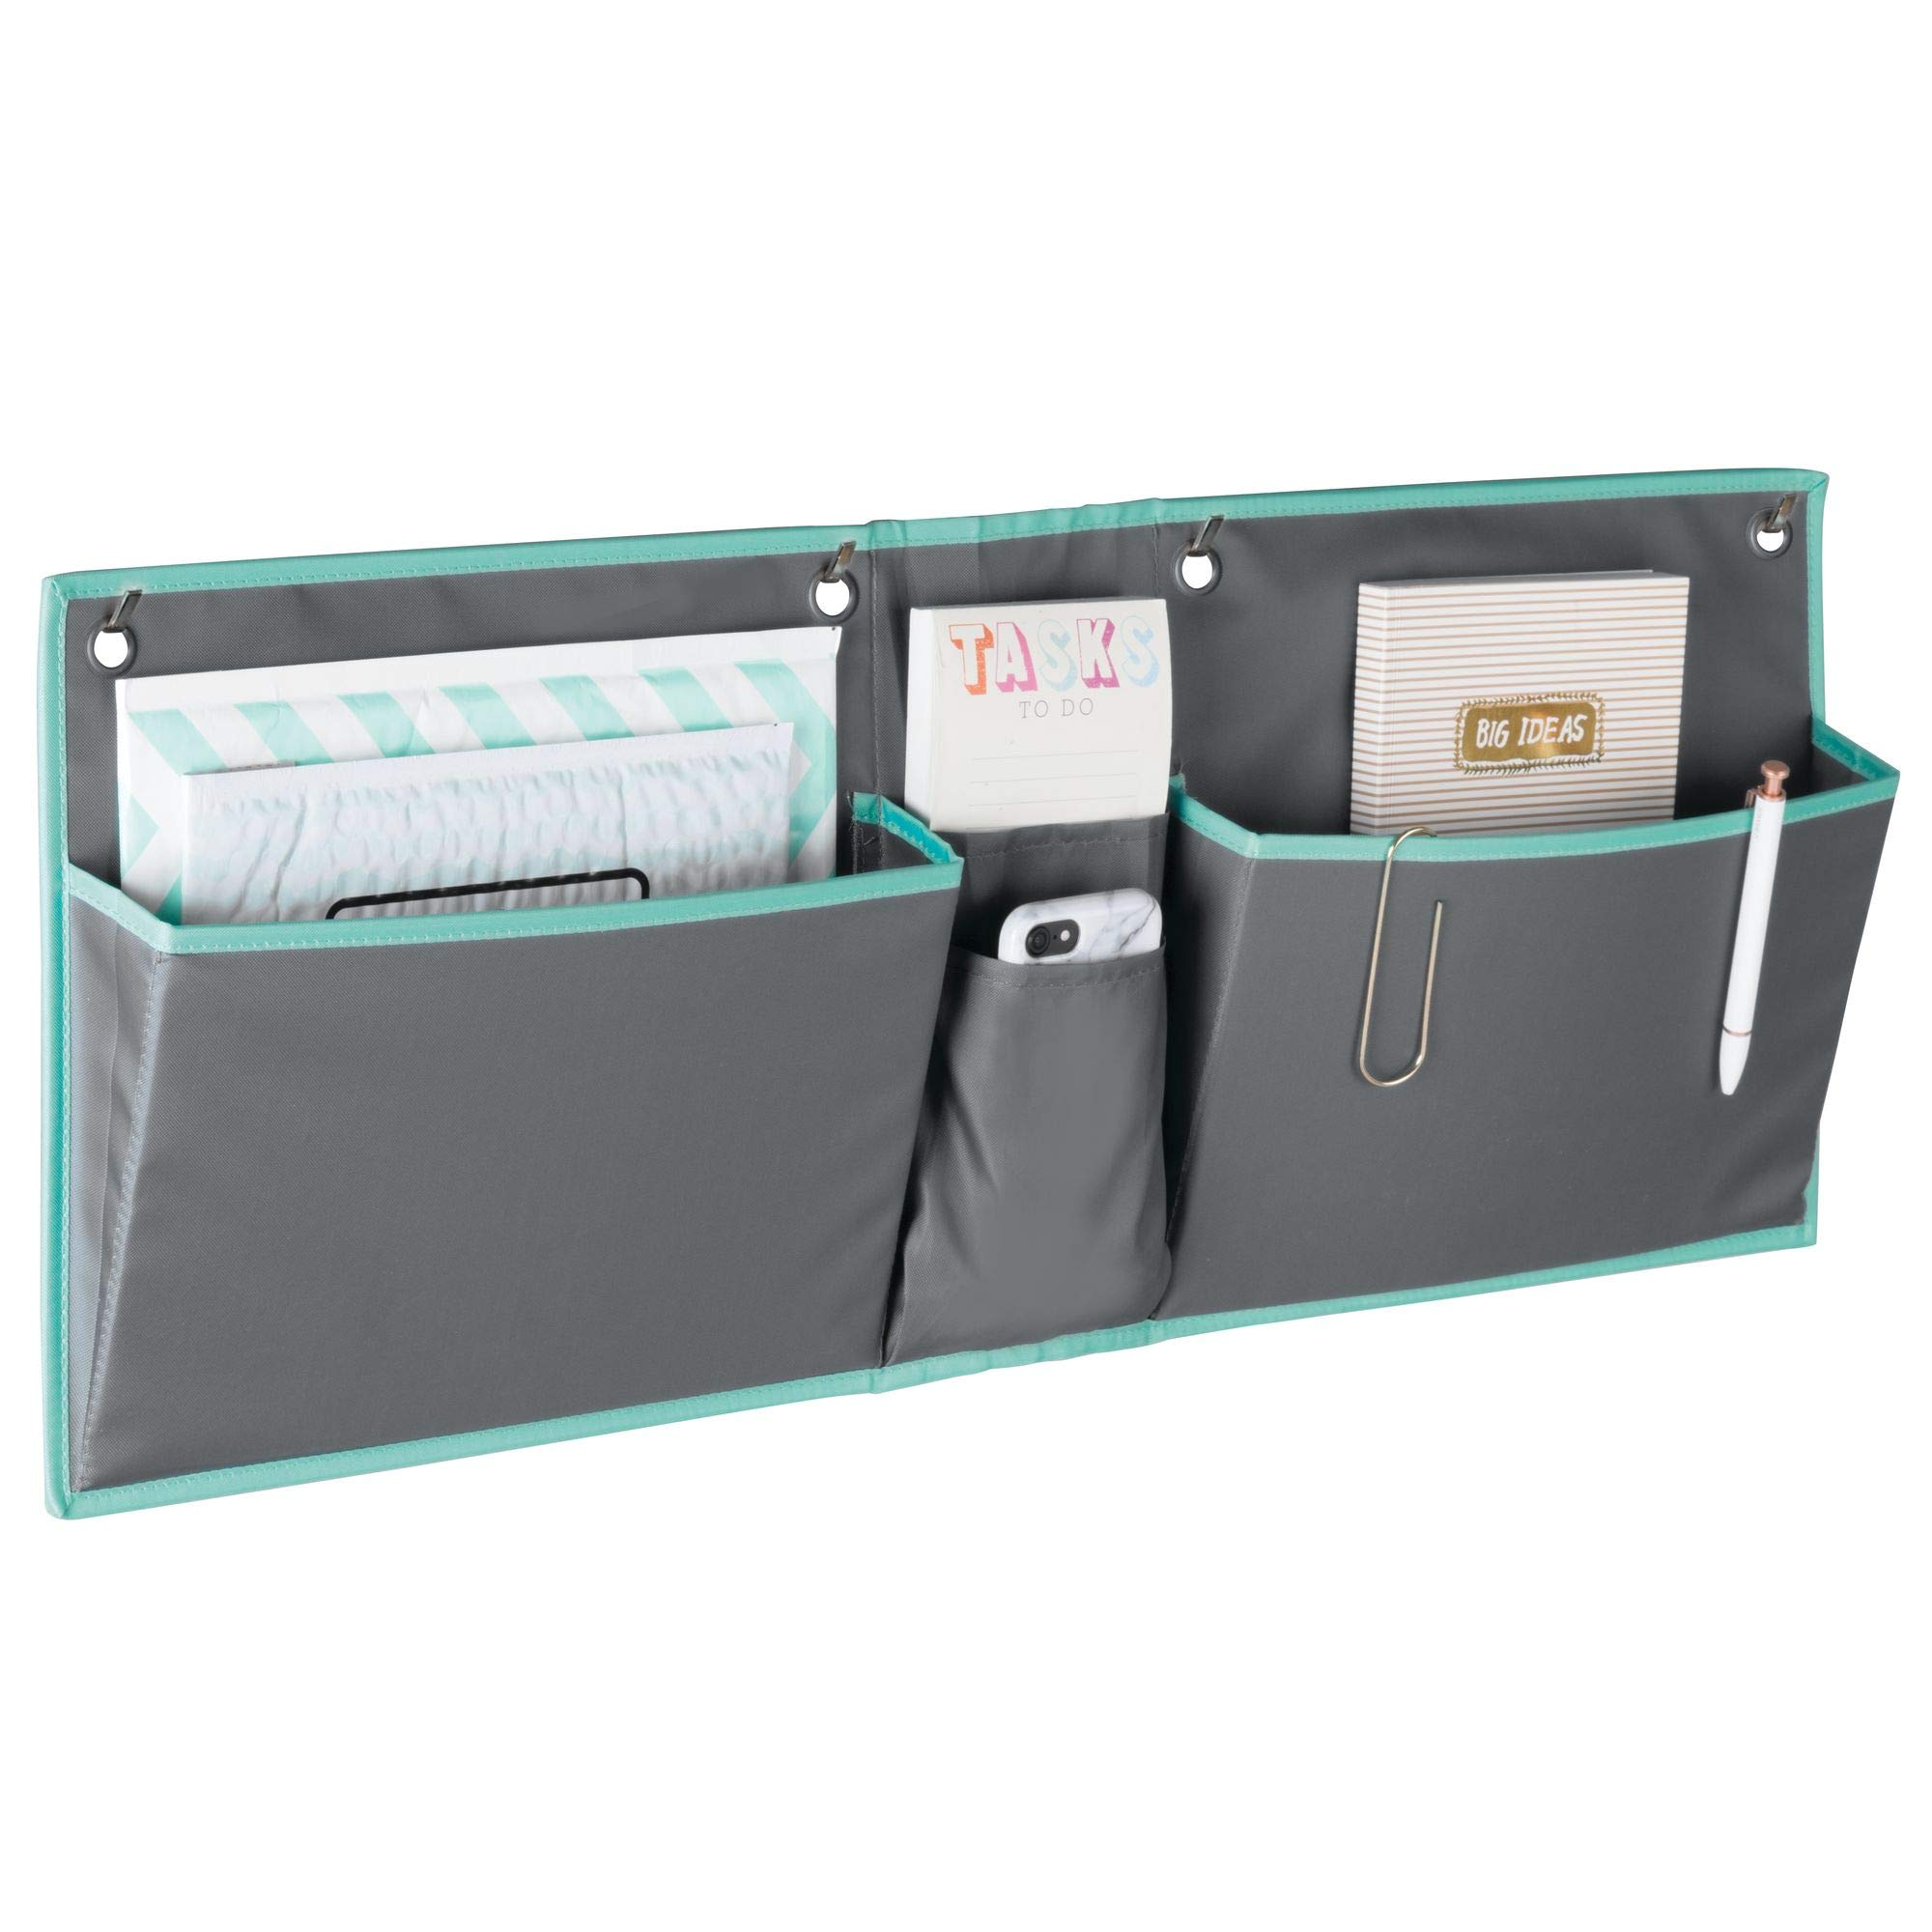 mDesign Soft Fabric Wide Over The Door Hanging Storage Organizer - 4 Pockets in 2 Sizes - Horizontal Office Center Home Office, Work Cubicle - Hooks Included, Gray/Teal Blue